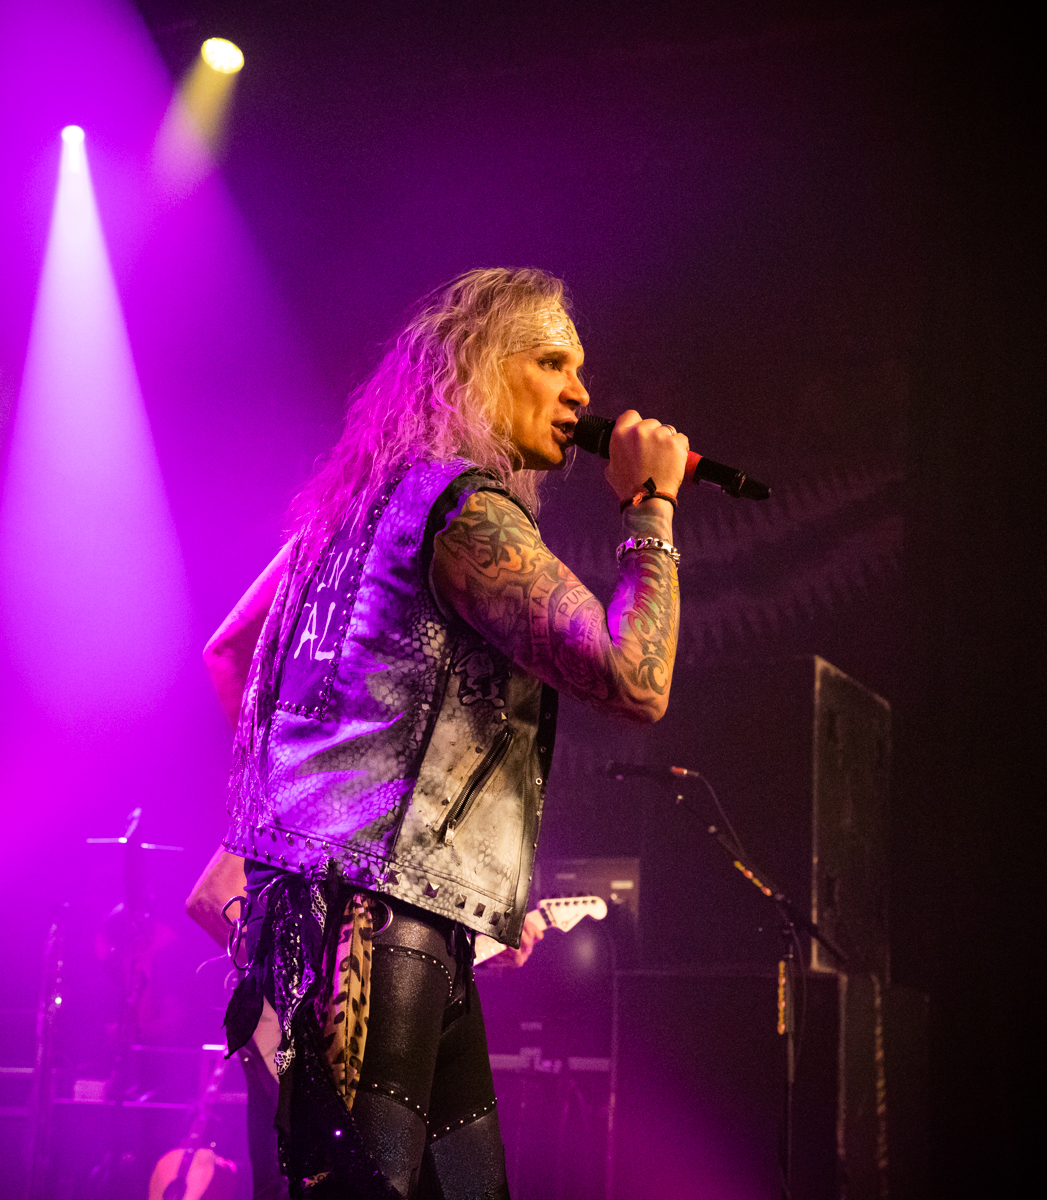 SteelPanther-HouseofBlues-Chicago_IL-20191208-IanBardecki-90